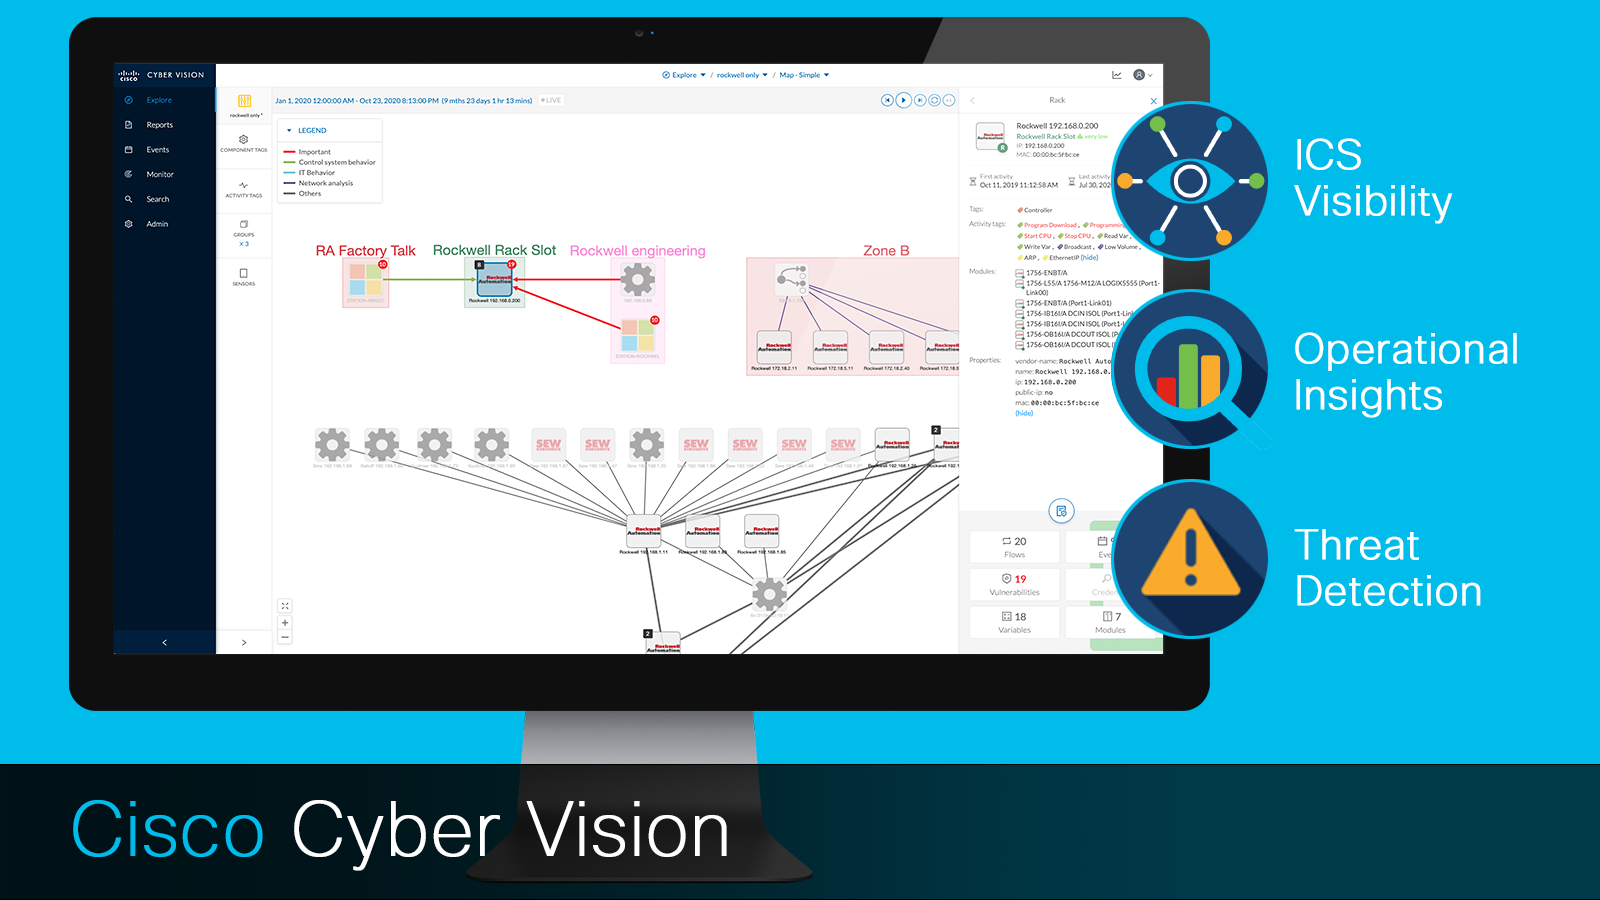 Cisco Cyber Vision: ICS Visibility, operational insights, threat detection